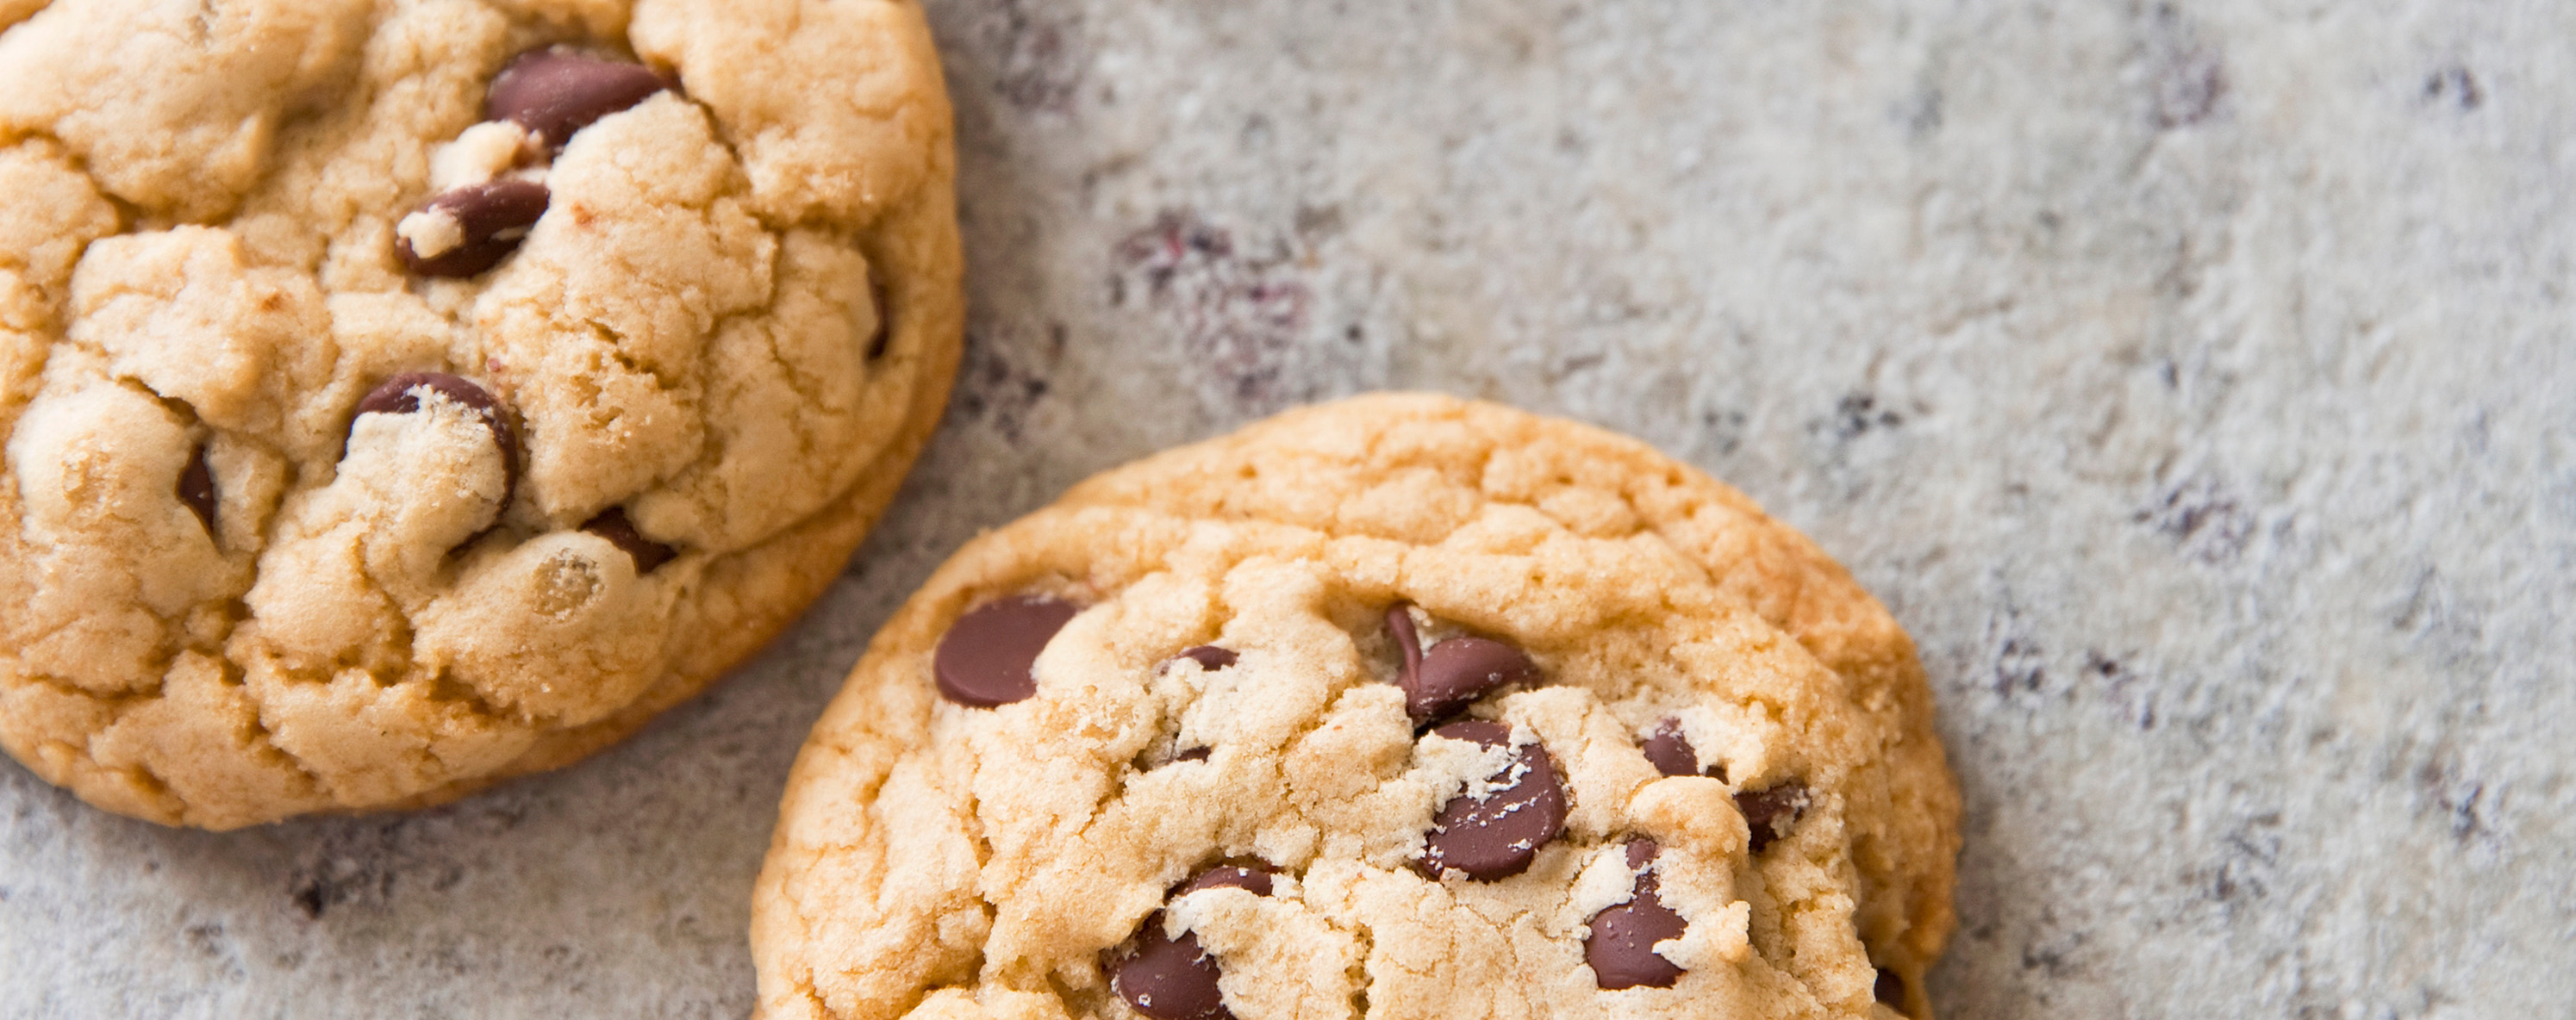 Chewy Chocolate Chip Cookies For Kids America S Test Kitchen Kids